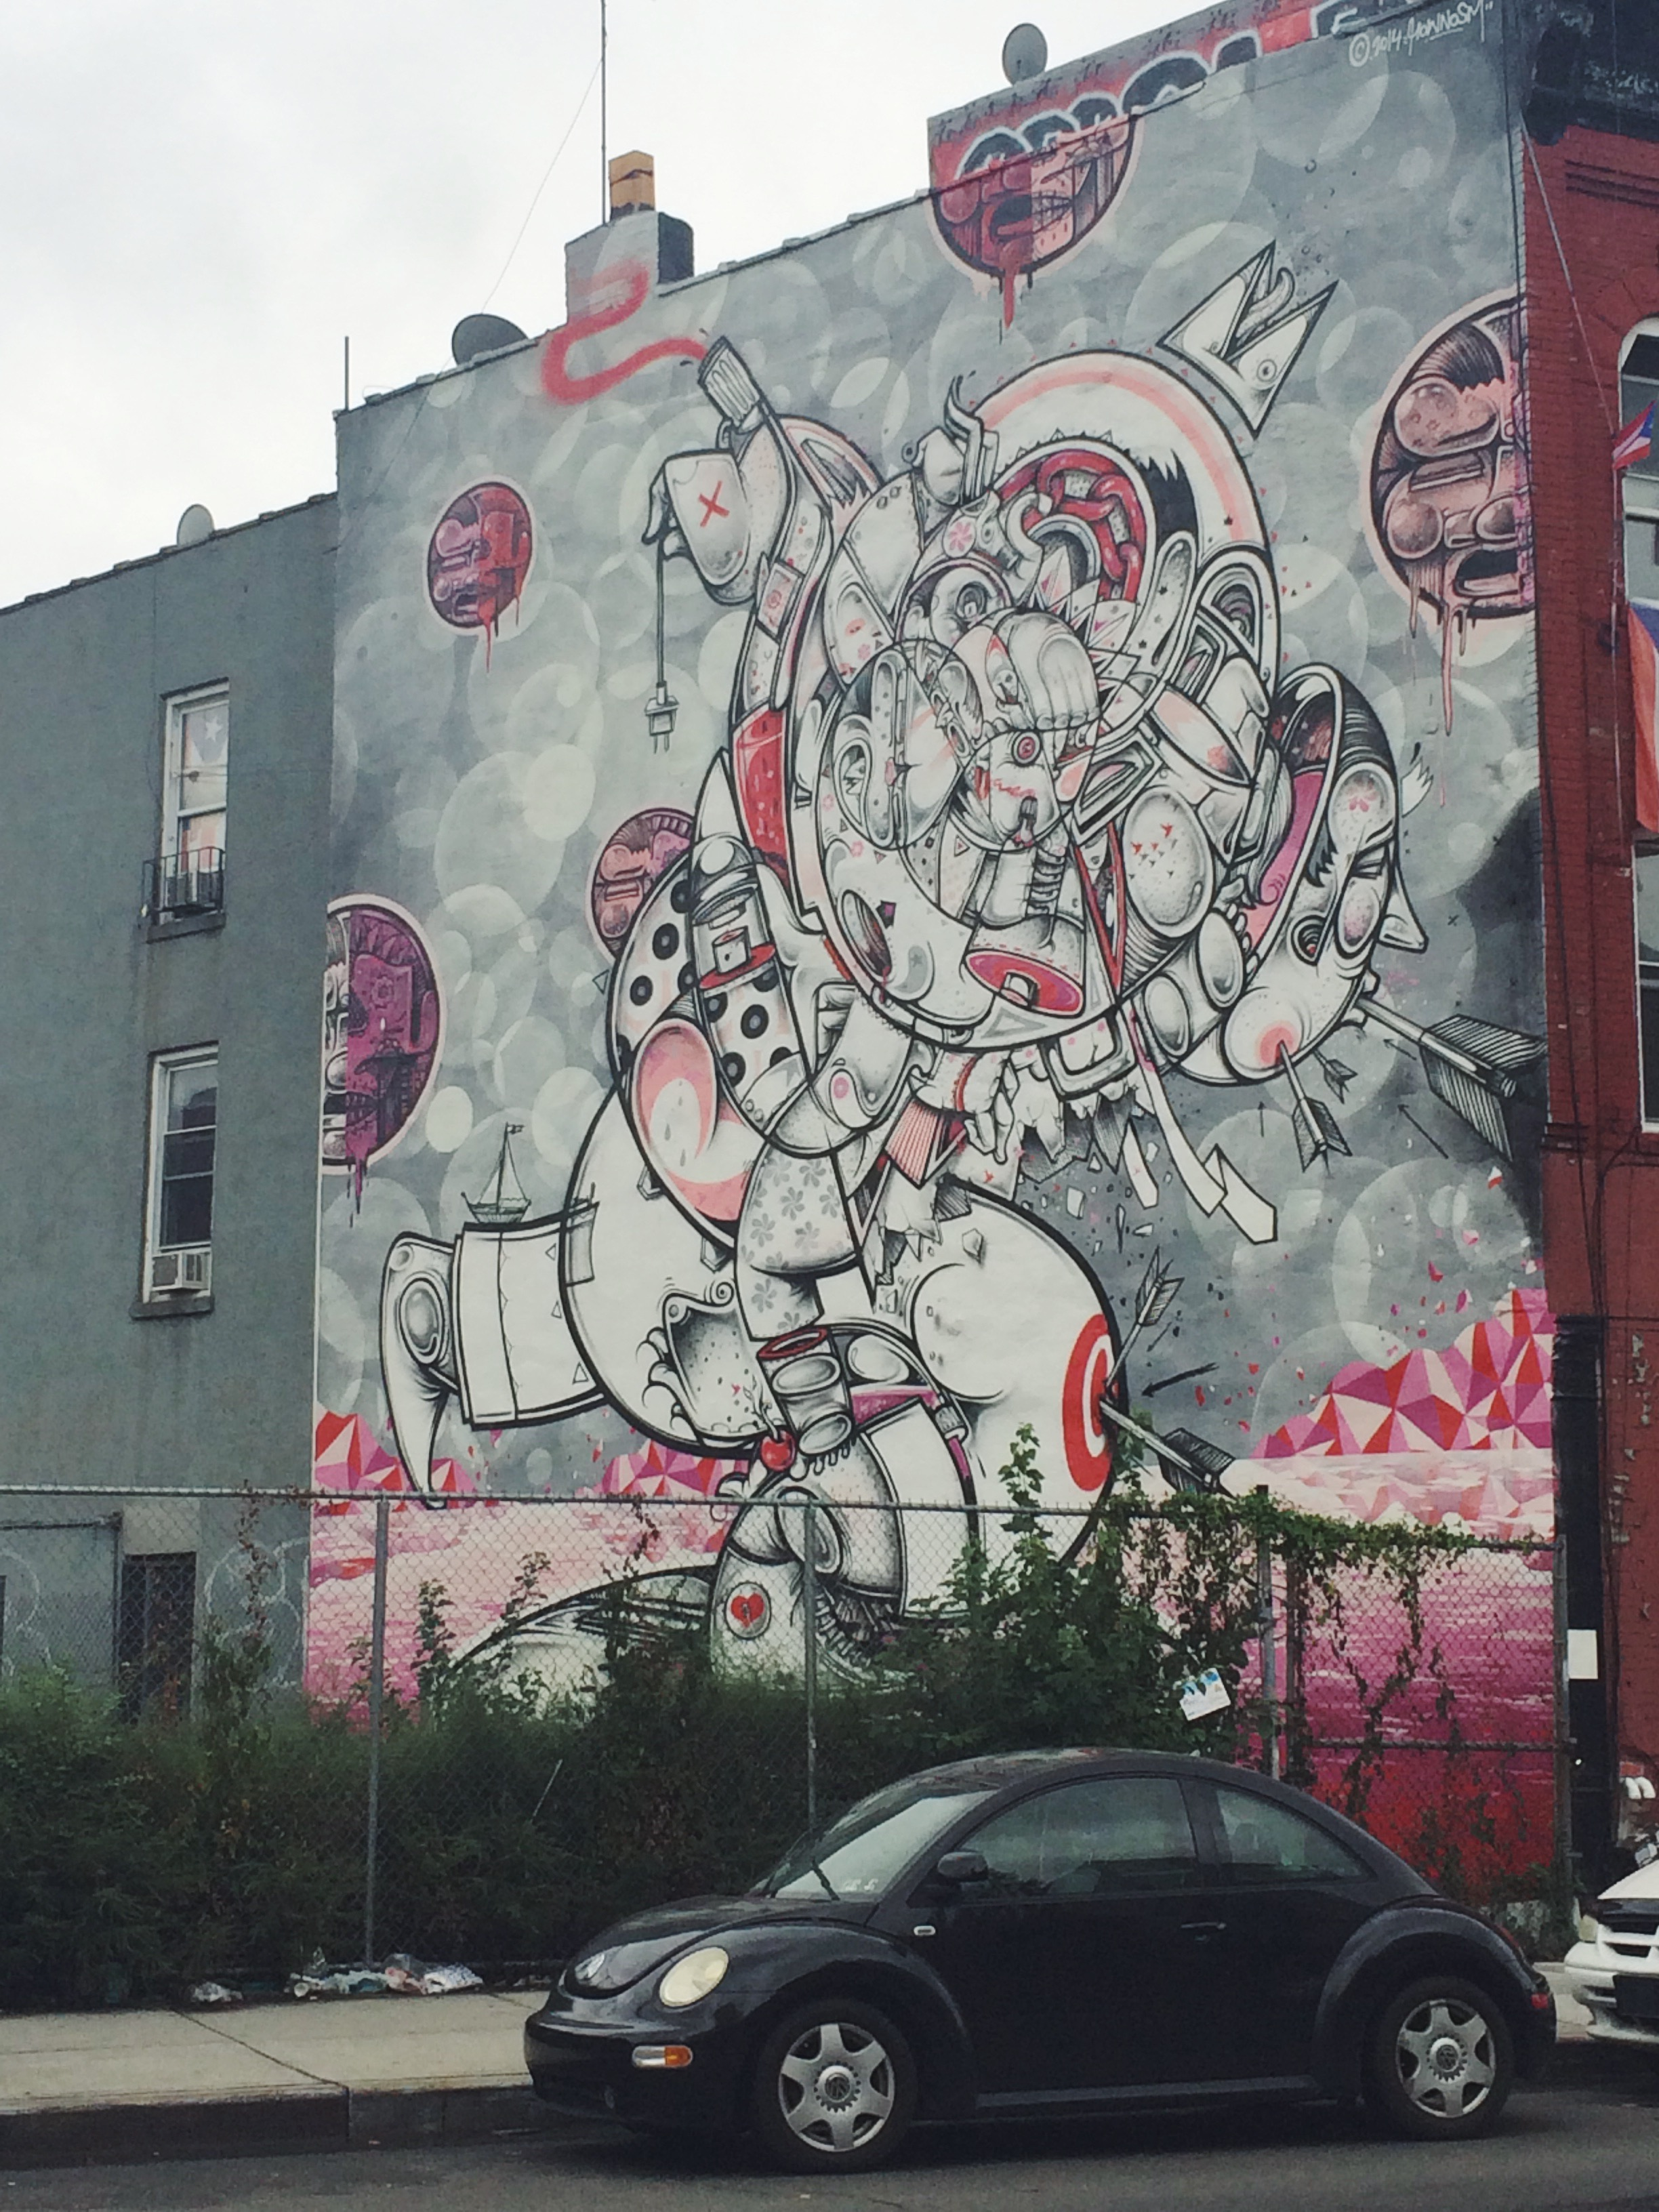 From the Graffiti tour in Brooklyn. This was a legal piece that was commissioned.